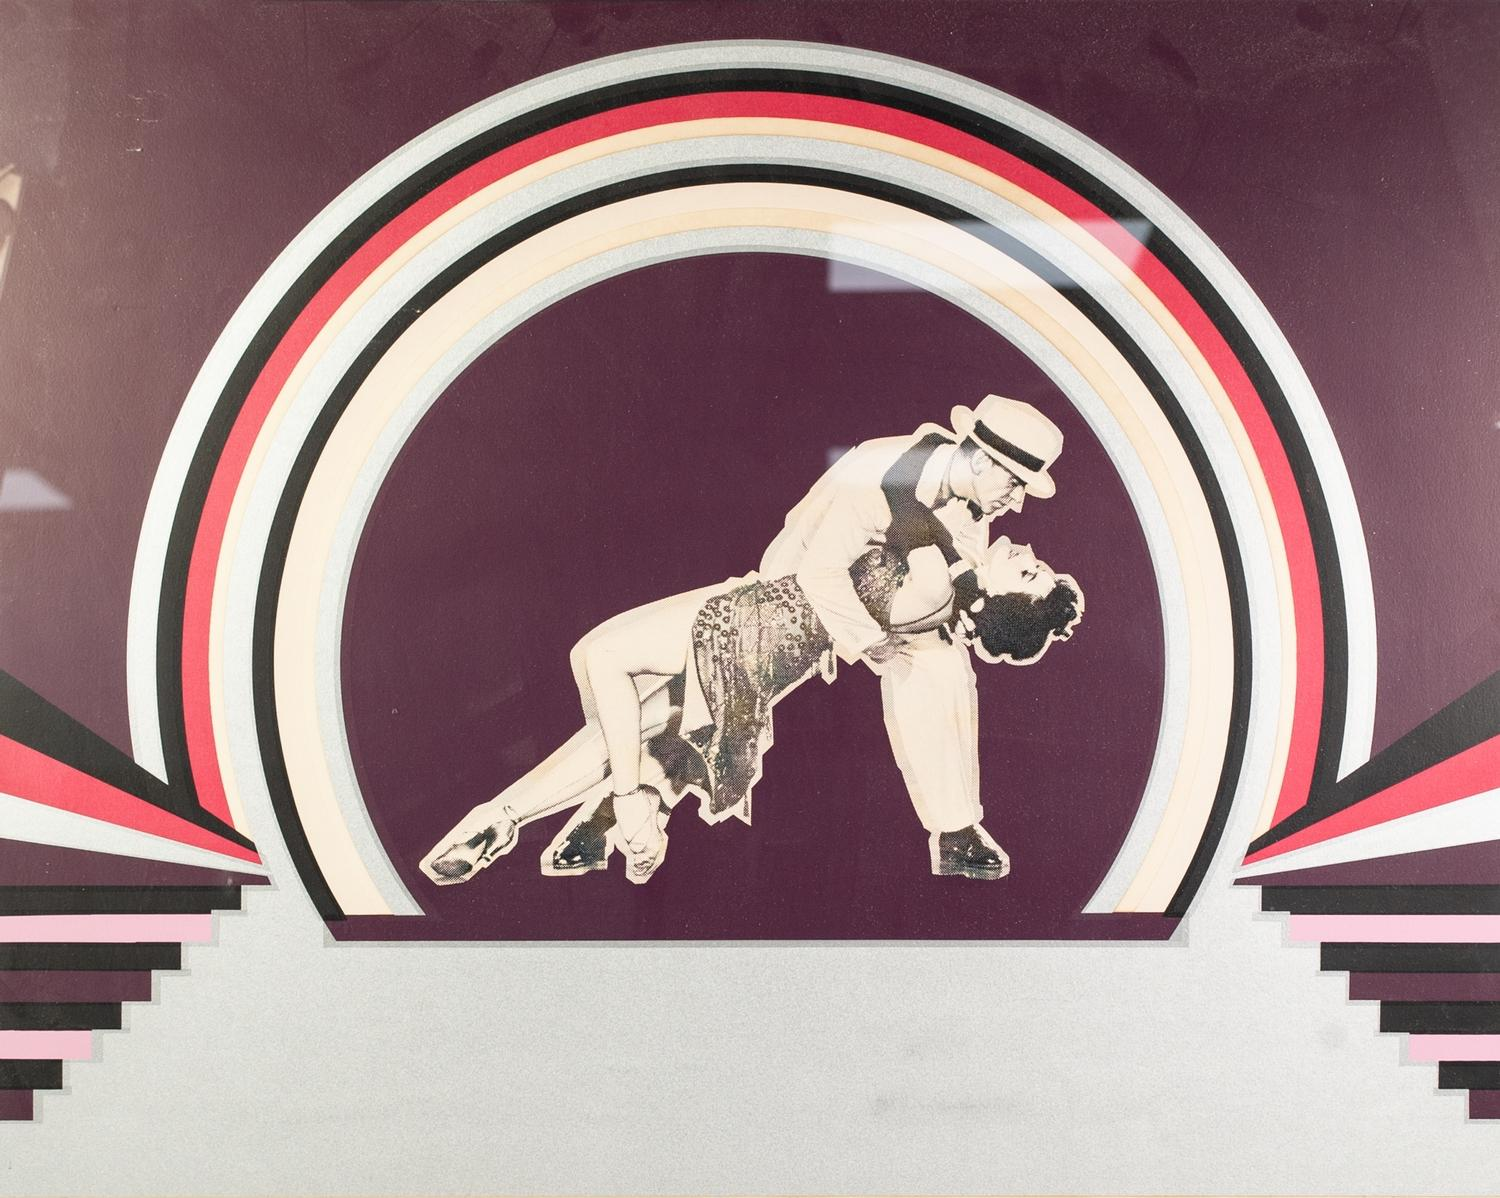 Lot 329 - ELLEN KUHN SILK SCREEN PRINT, ARTIST SIGNED WORKING PROOF 'Fred Astaire & Cyd Charisse' Signed,